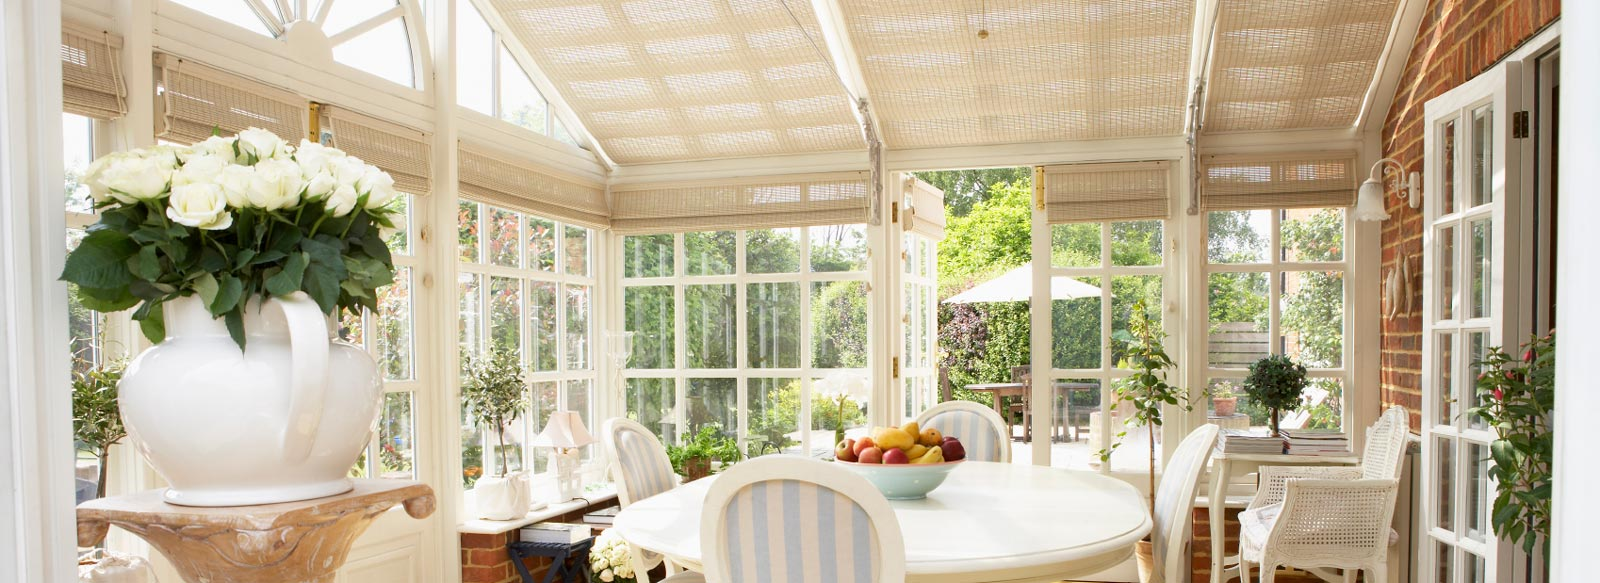 marla conservatory roof pinoleum blinds